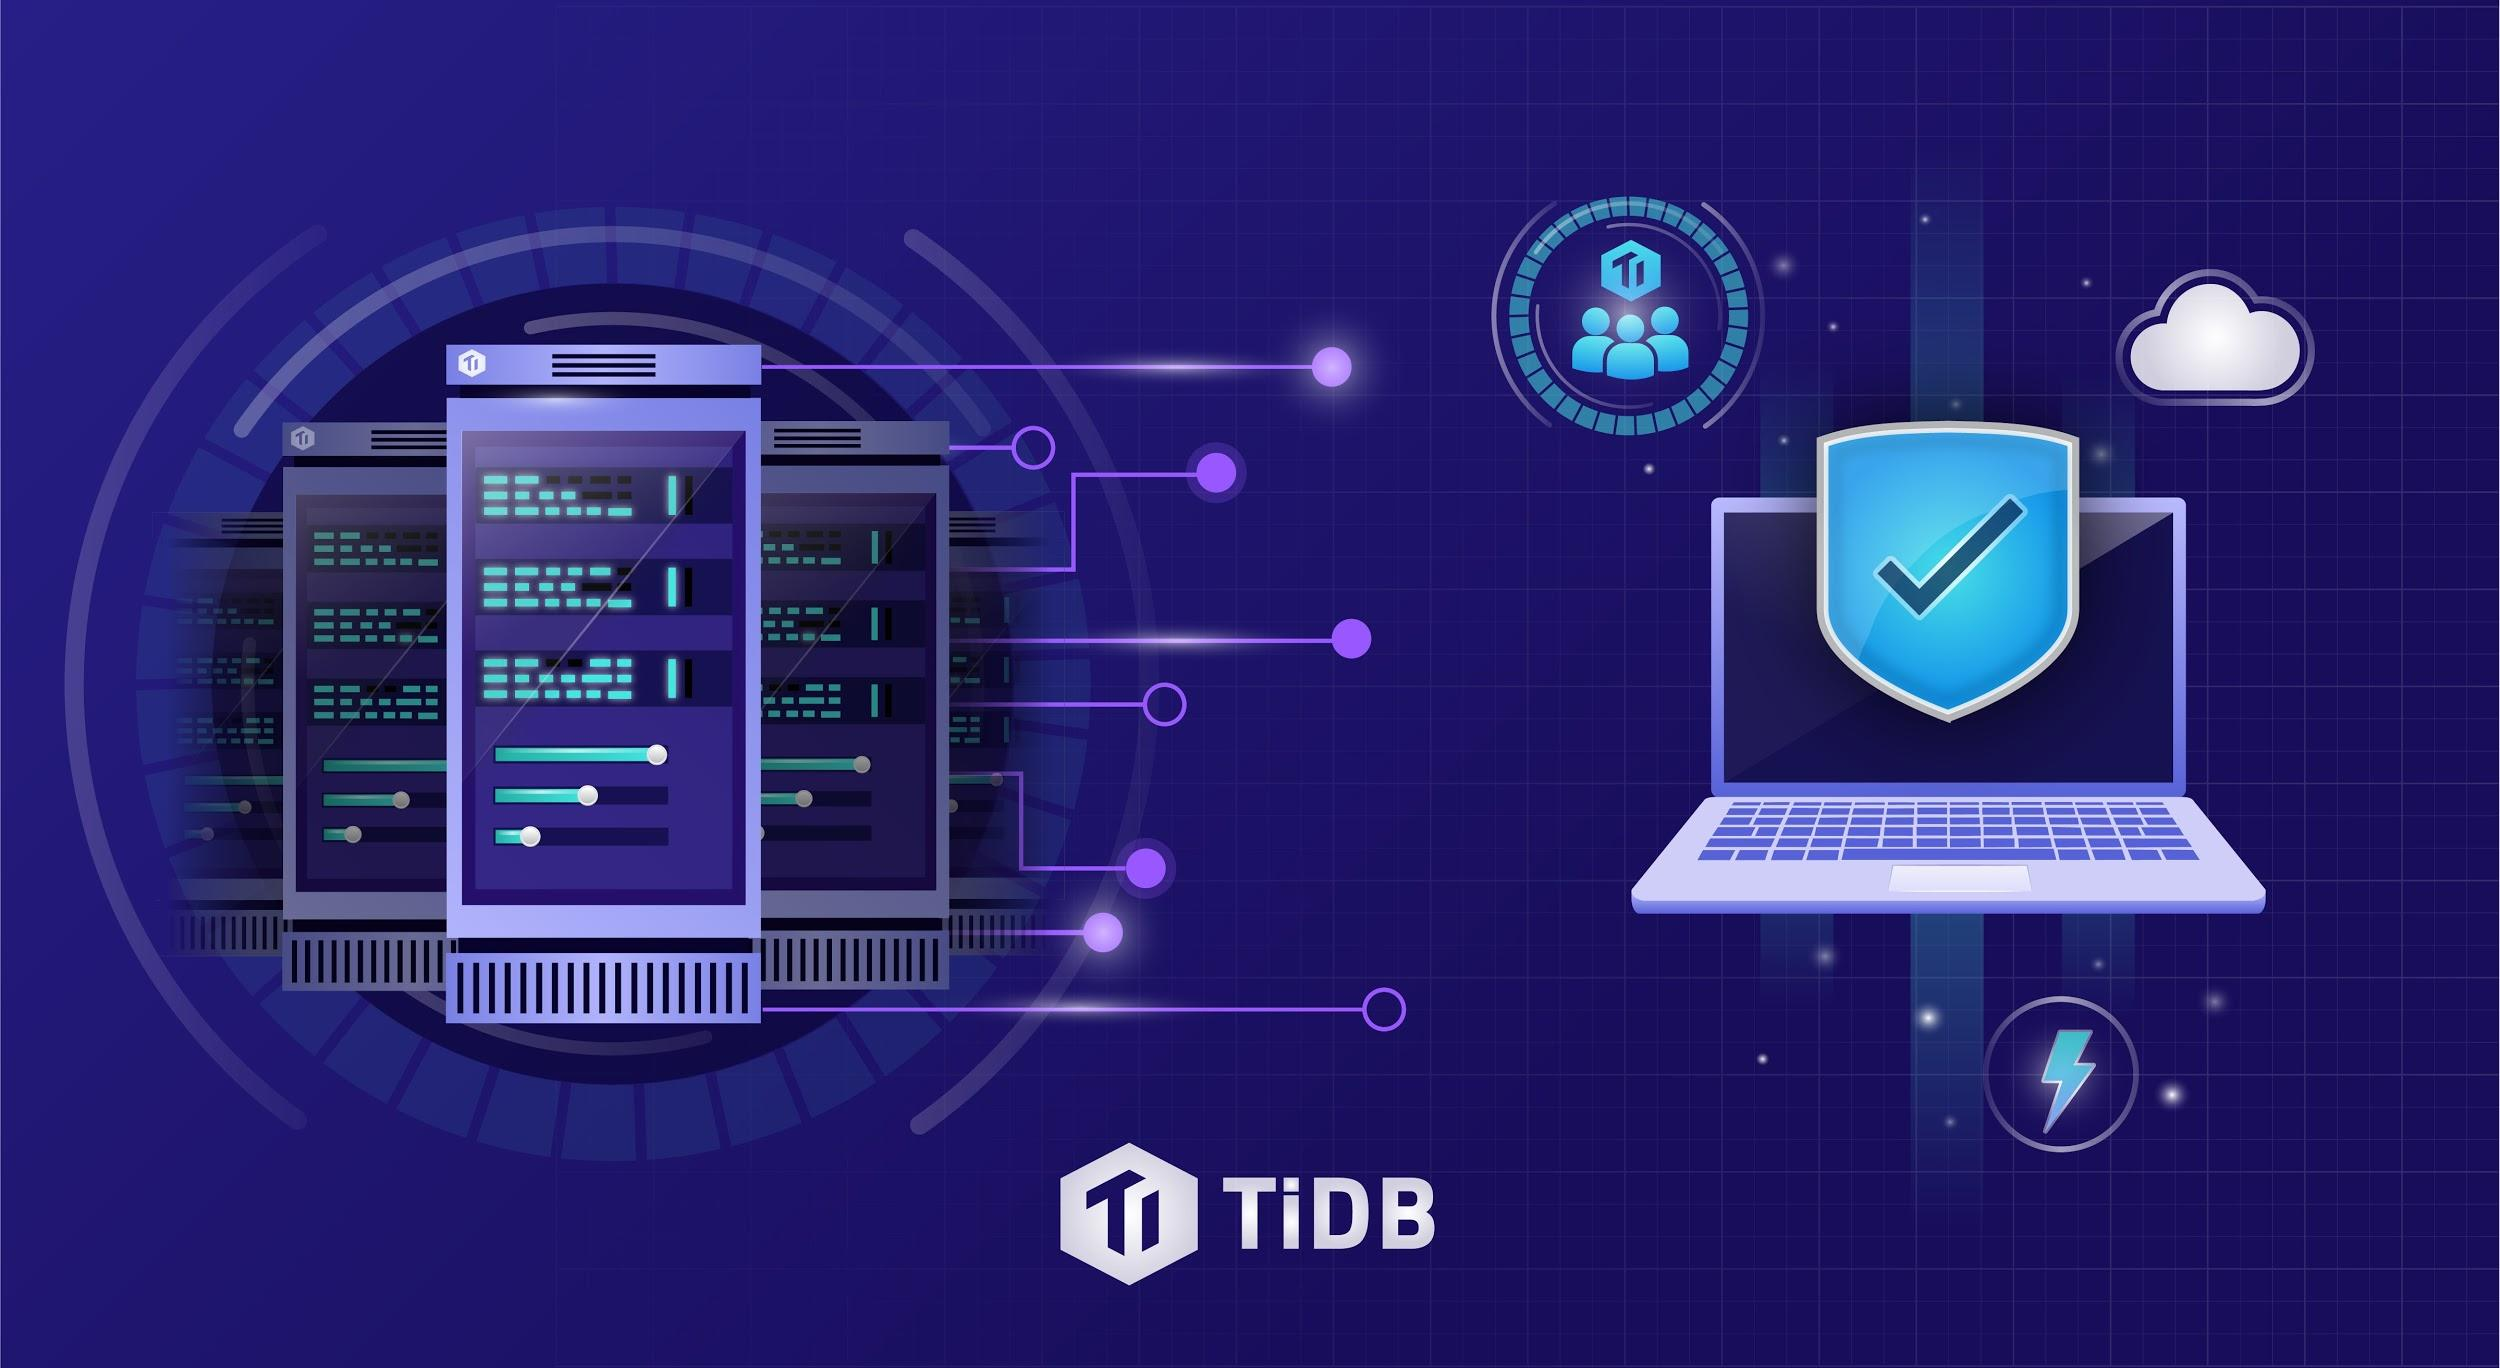 TiDB 2.0 is released